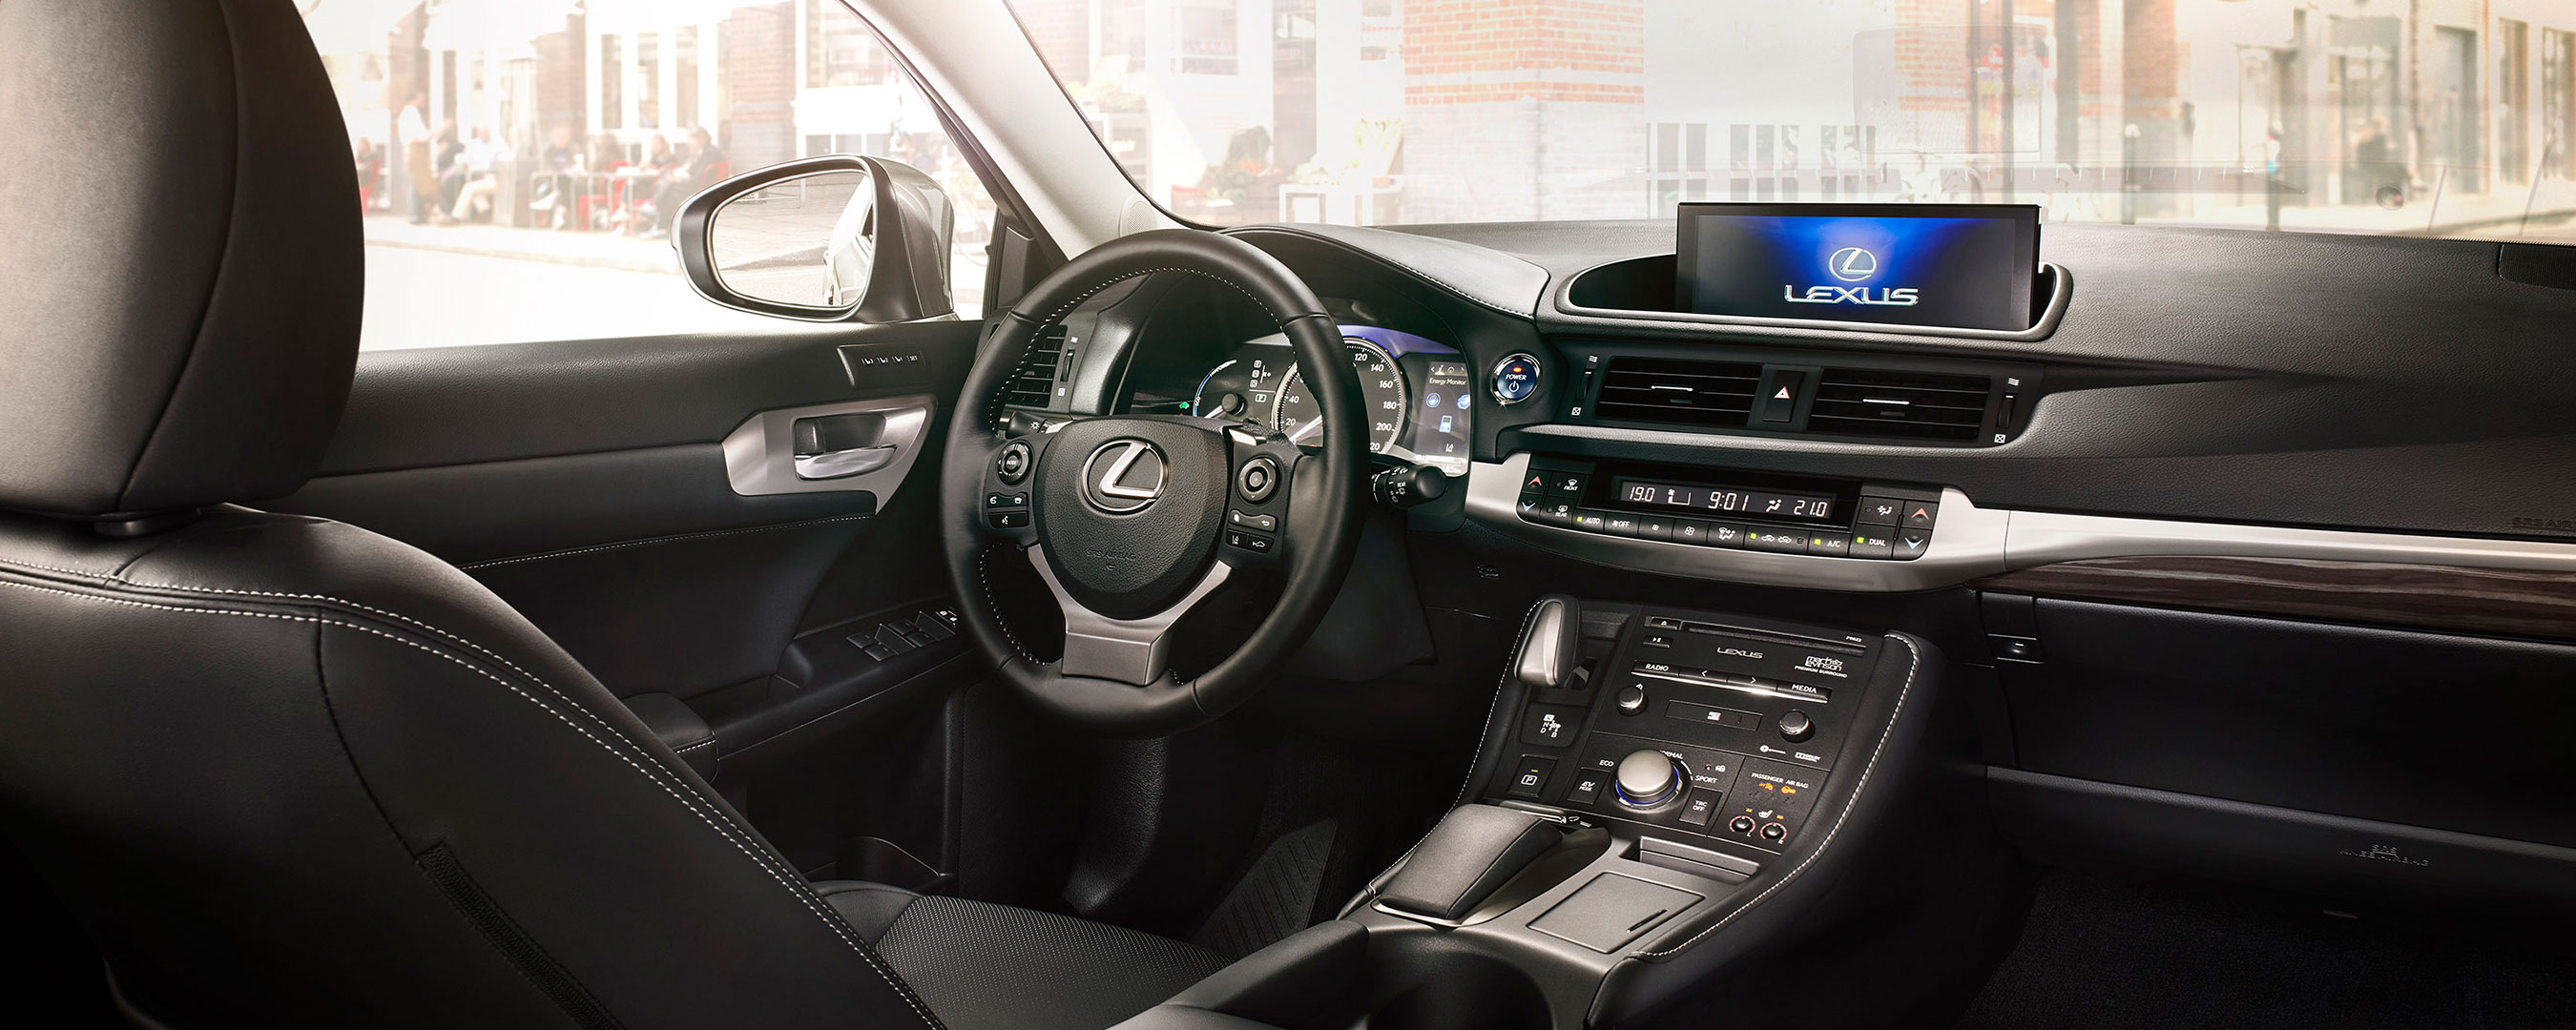 2018 lexus ct 200h my18 experience hero interior front